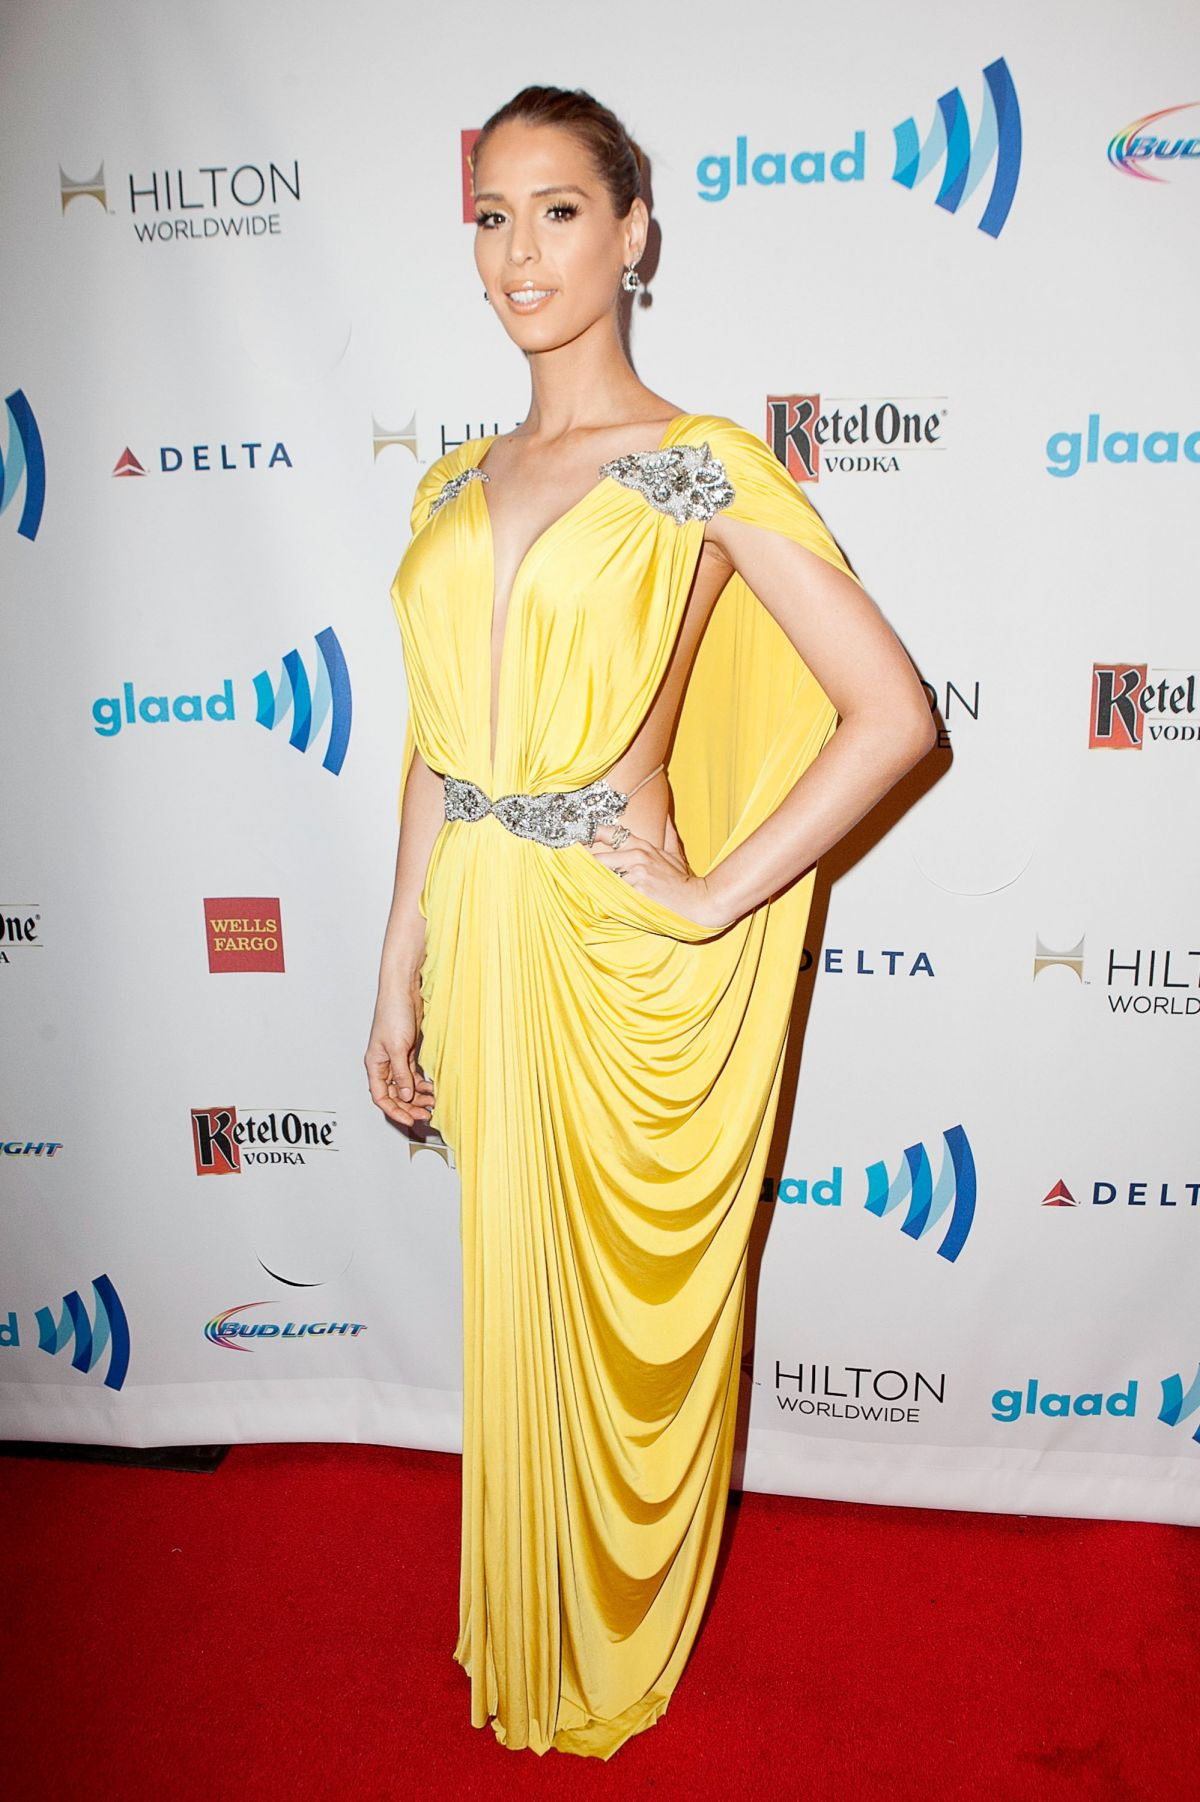 CARMEN CARRERA at 2014 Glaad Media Awards in Los Angeles